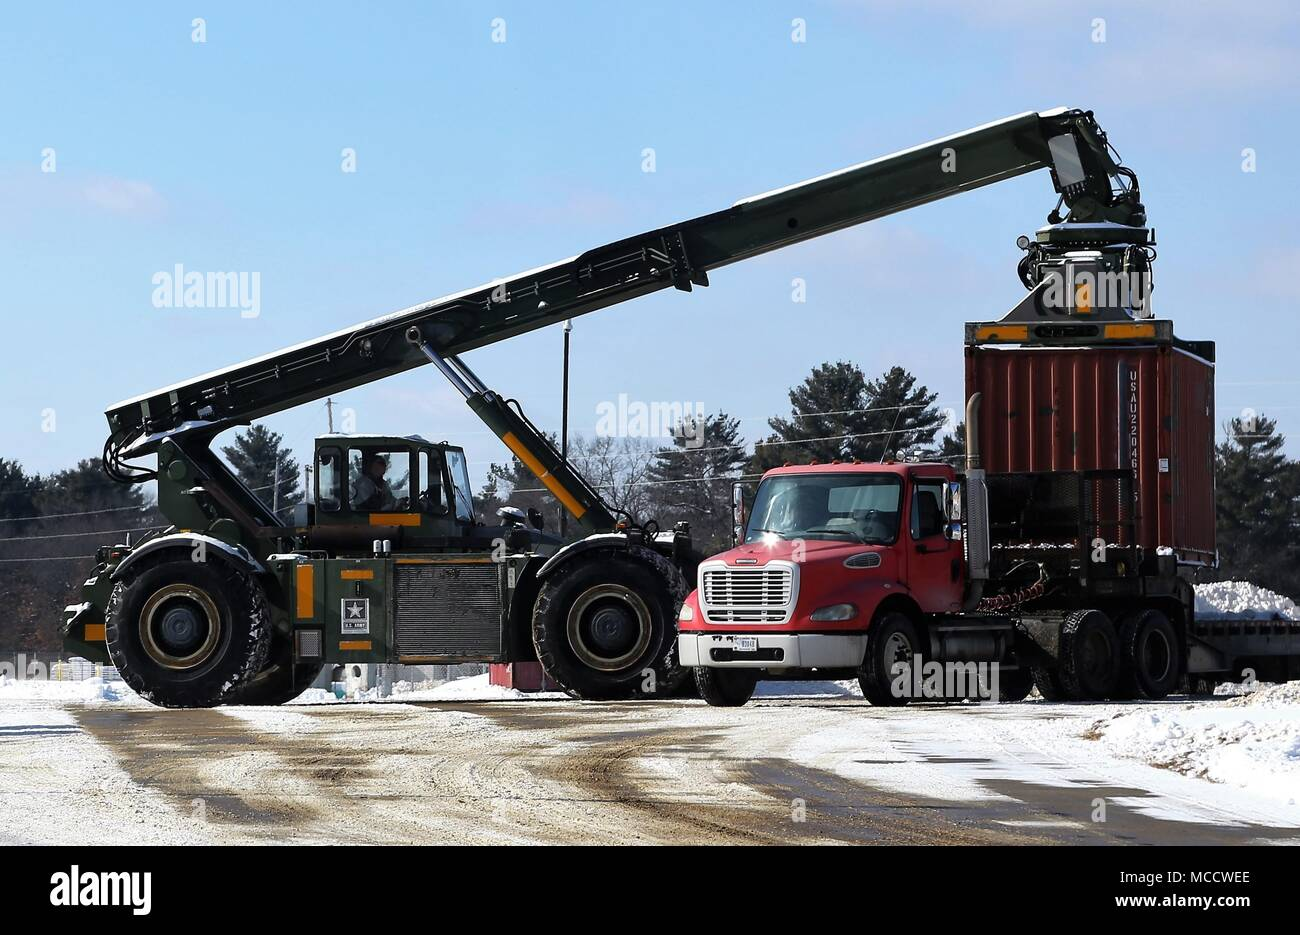 Heavy equipment, capable of much